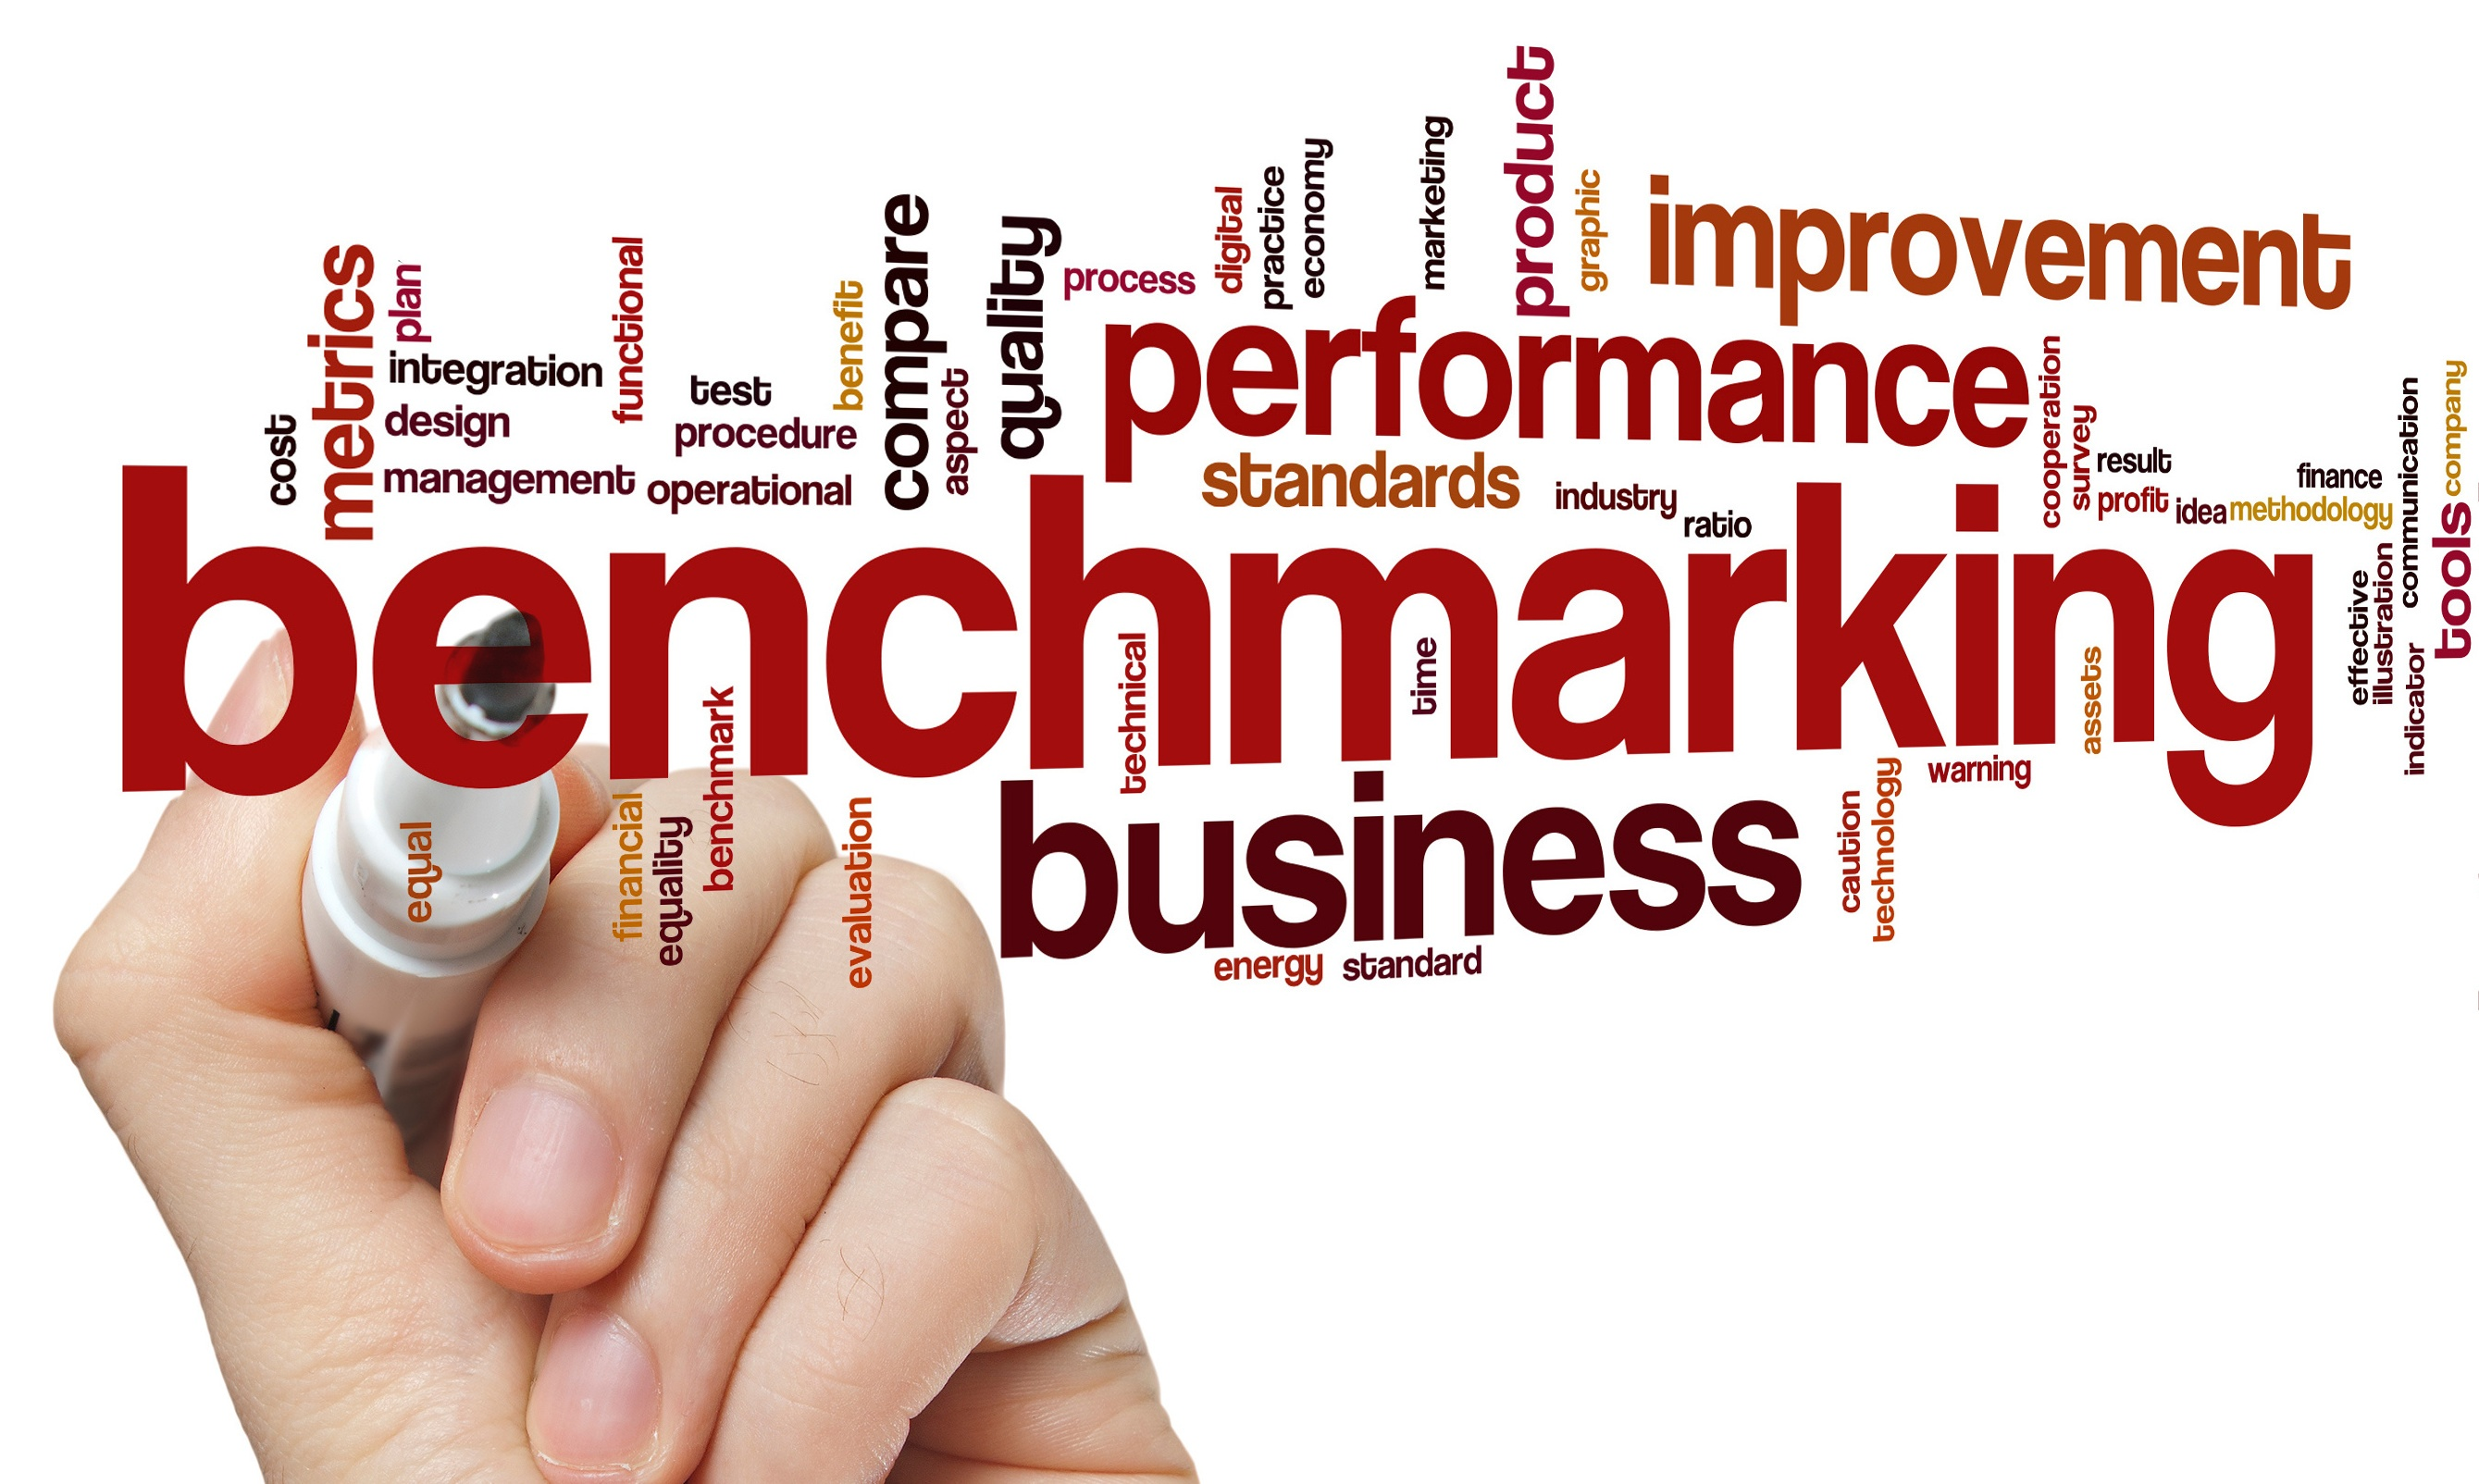 a stock image with words such as benchmarking, business, performance, design management in it